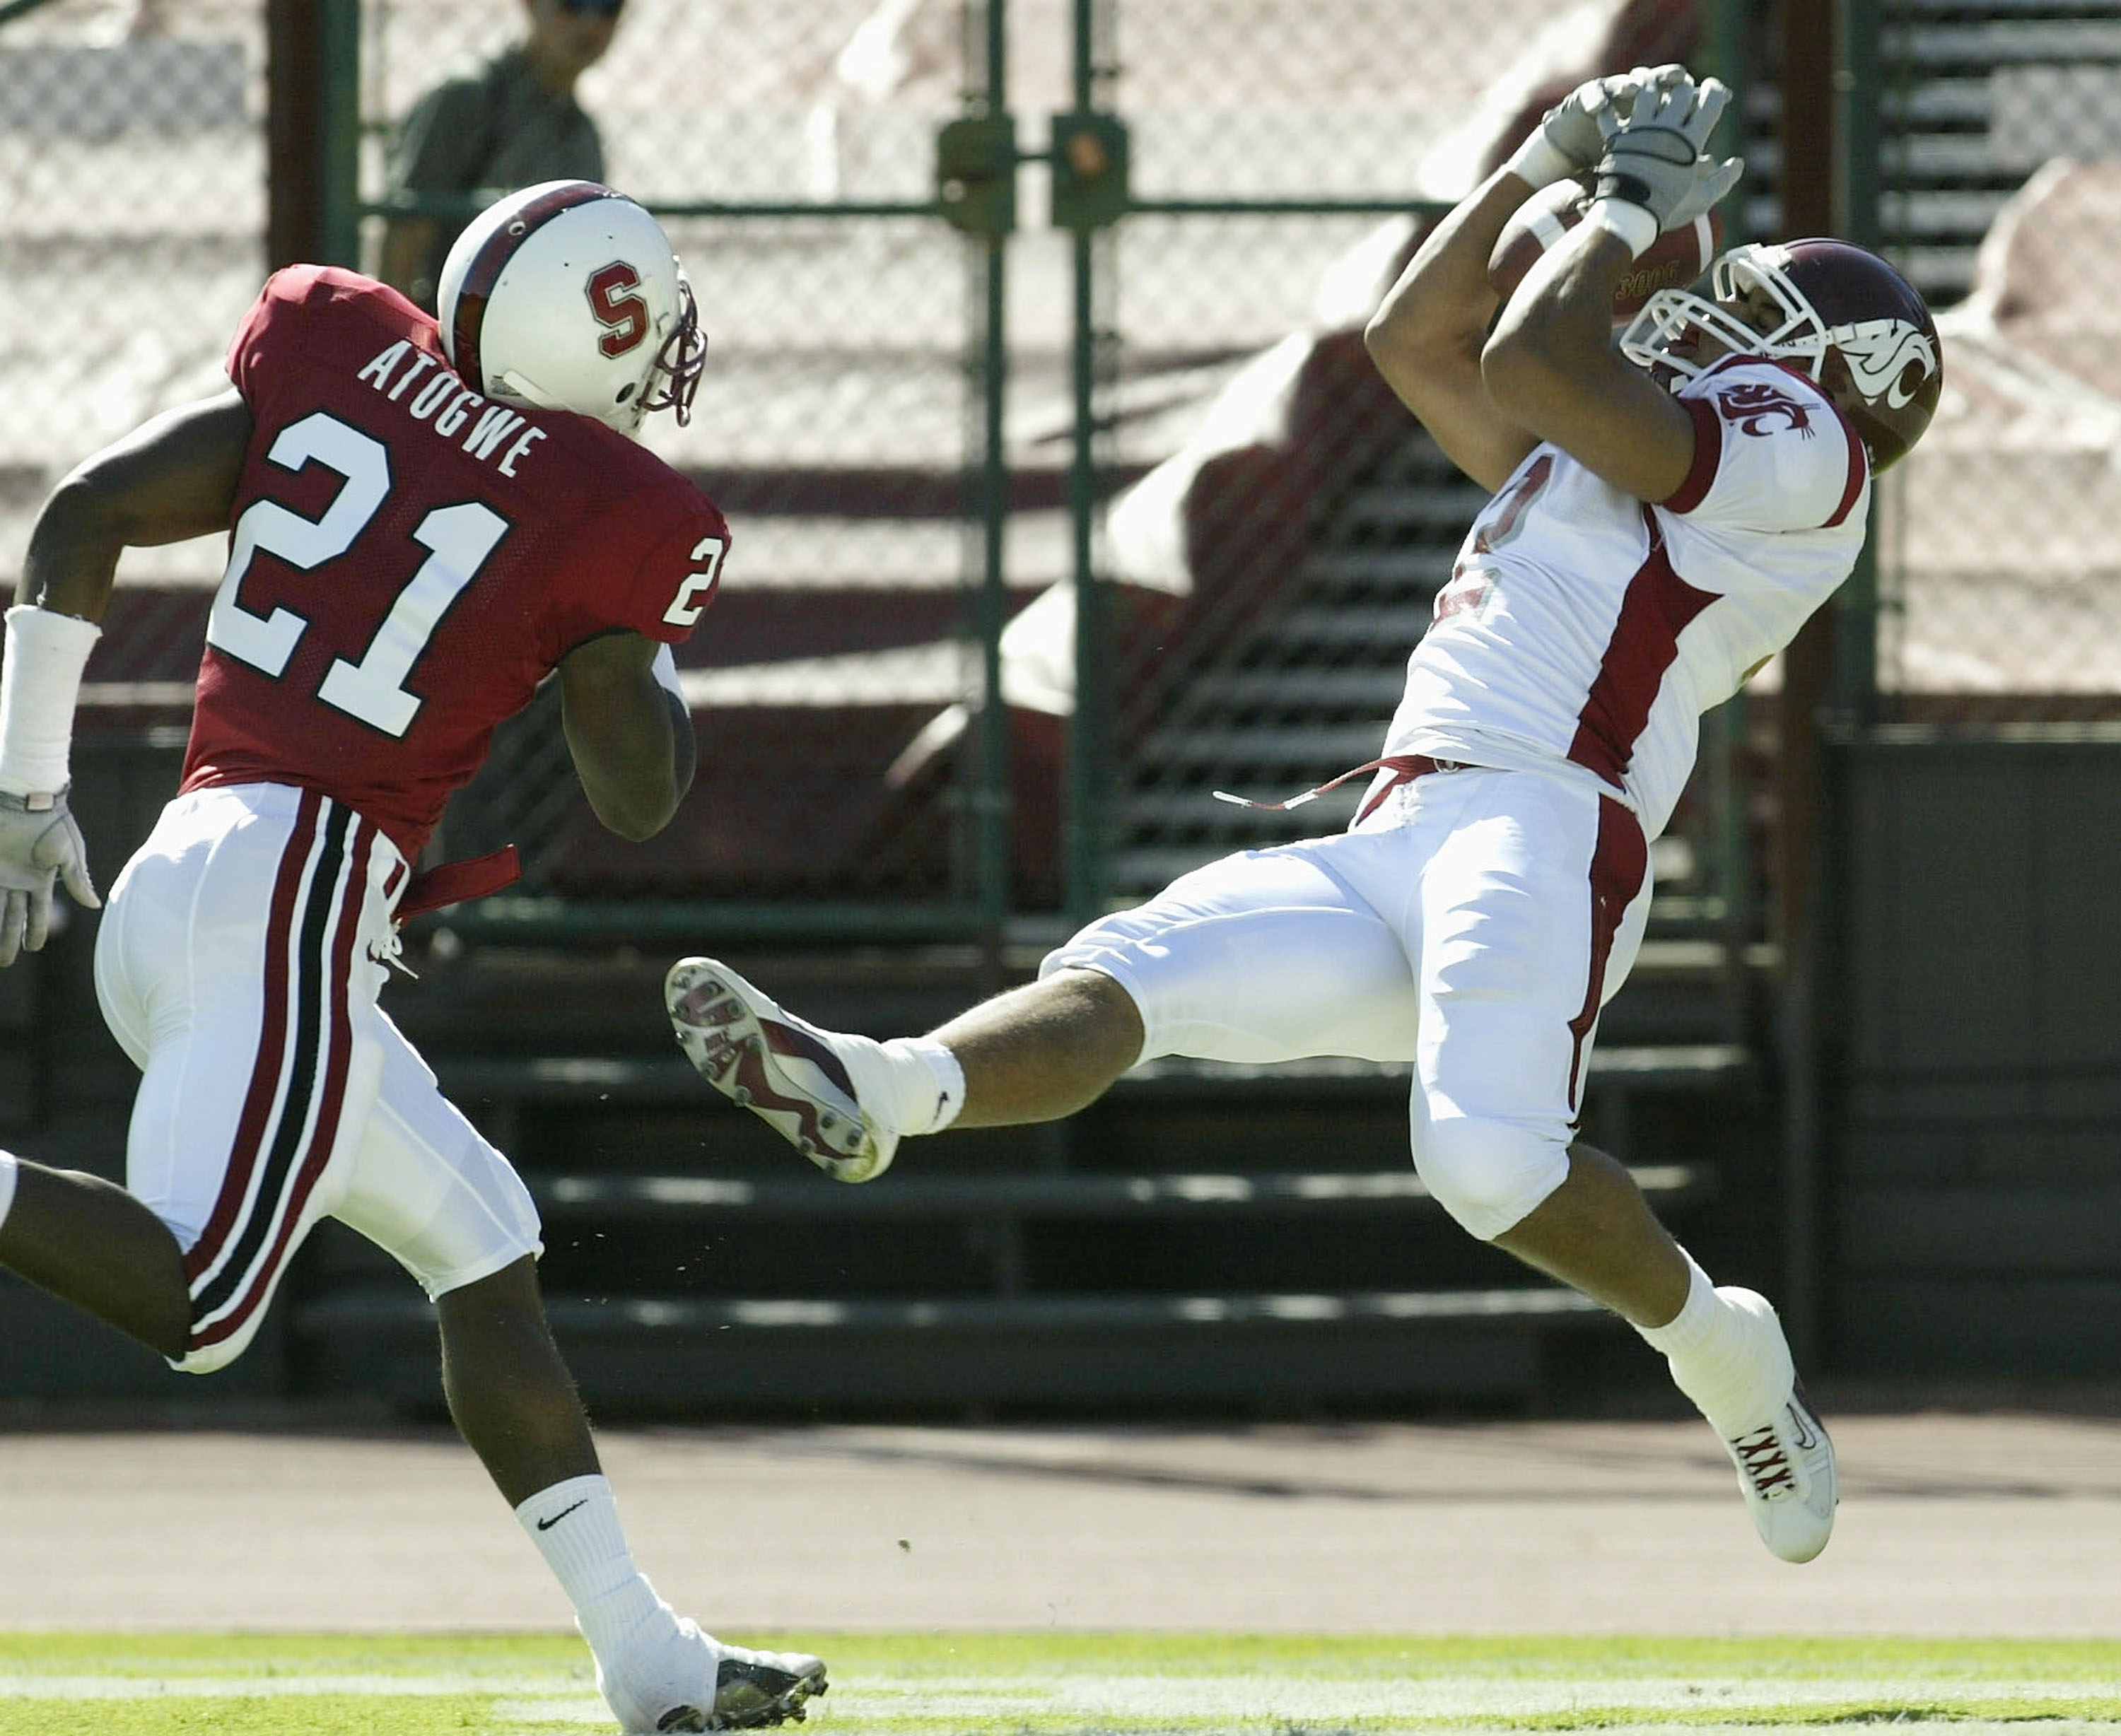 PALO ALTO, CA  - OCTOBER 18:  Wide receiver Chris Jordan #2 of the Washington State Cougars makes a touchdown catch on the game's first series as safety Oshiomogho Atogwe #21 of the Stanford Cardinal defends on October 18, 2003 at Stanford Stadium in Palo